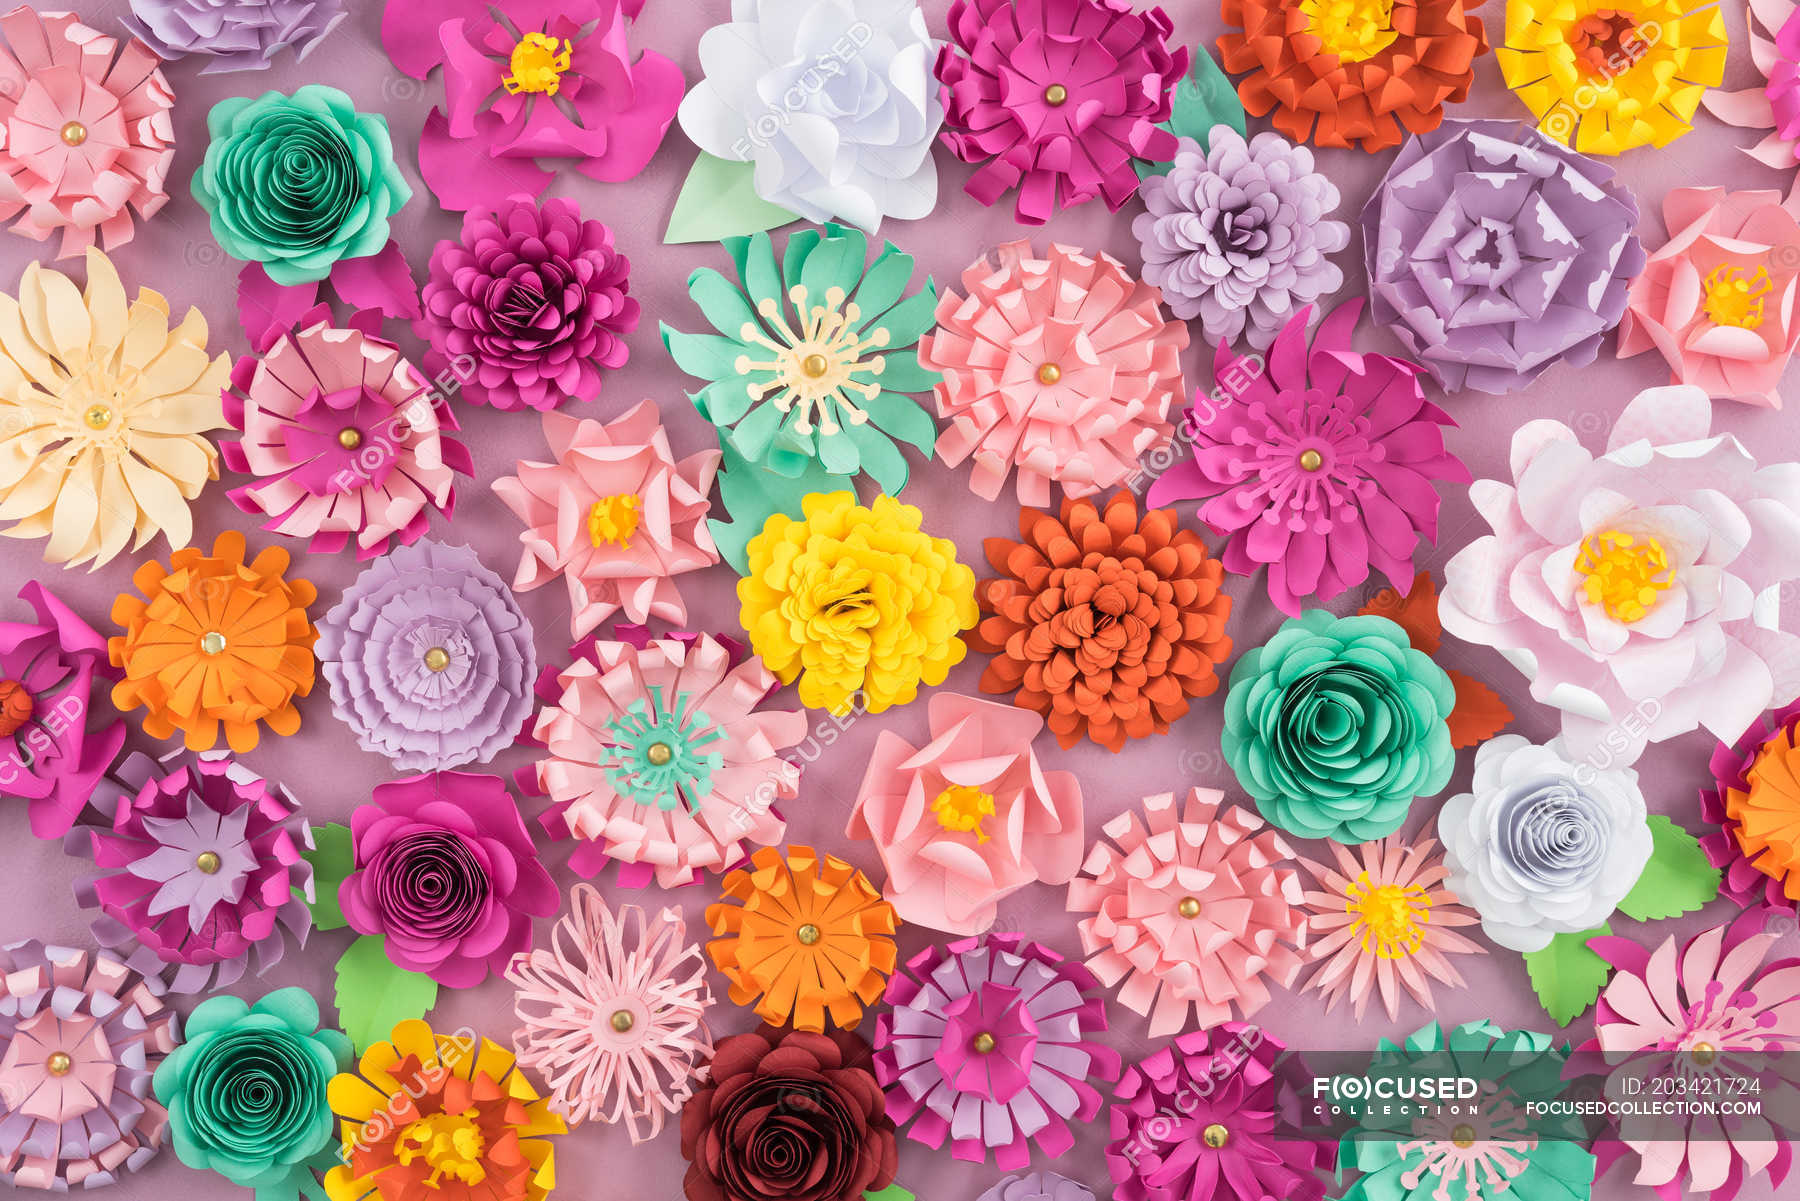 Creative Colorful Paper Flowers Full Frame Stock Photo 203421724